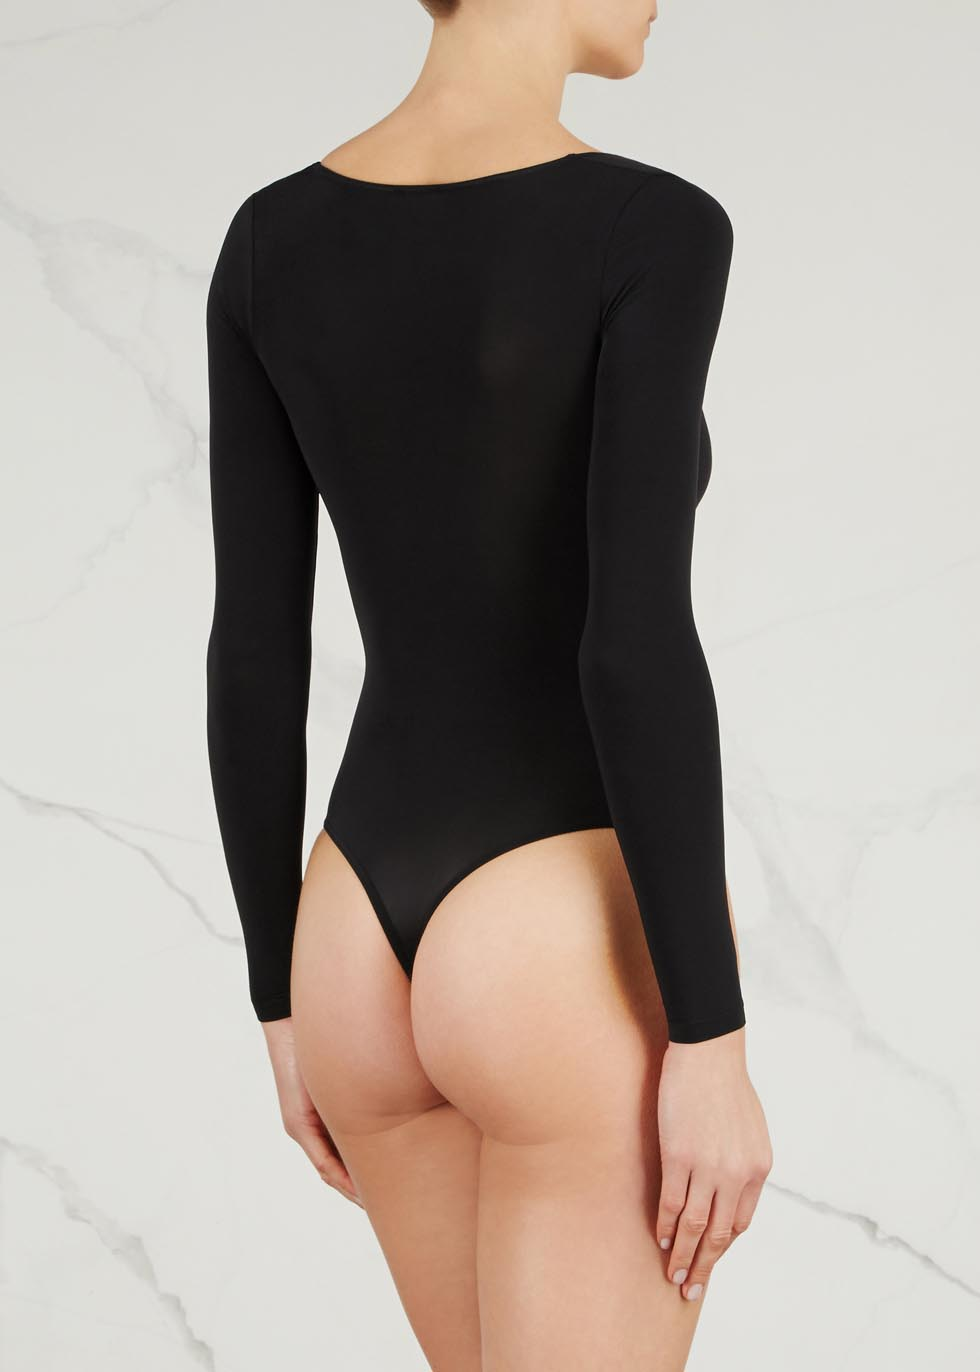 Buenos Aires black jersey bodysuit - Wolford